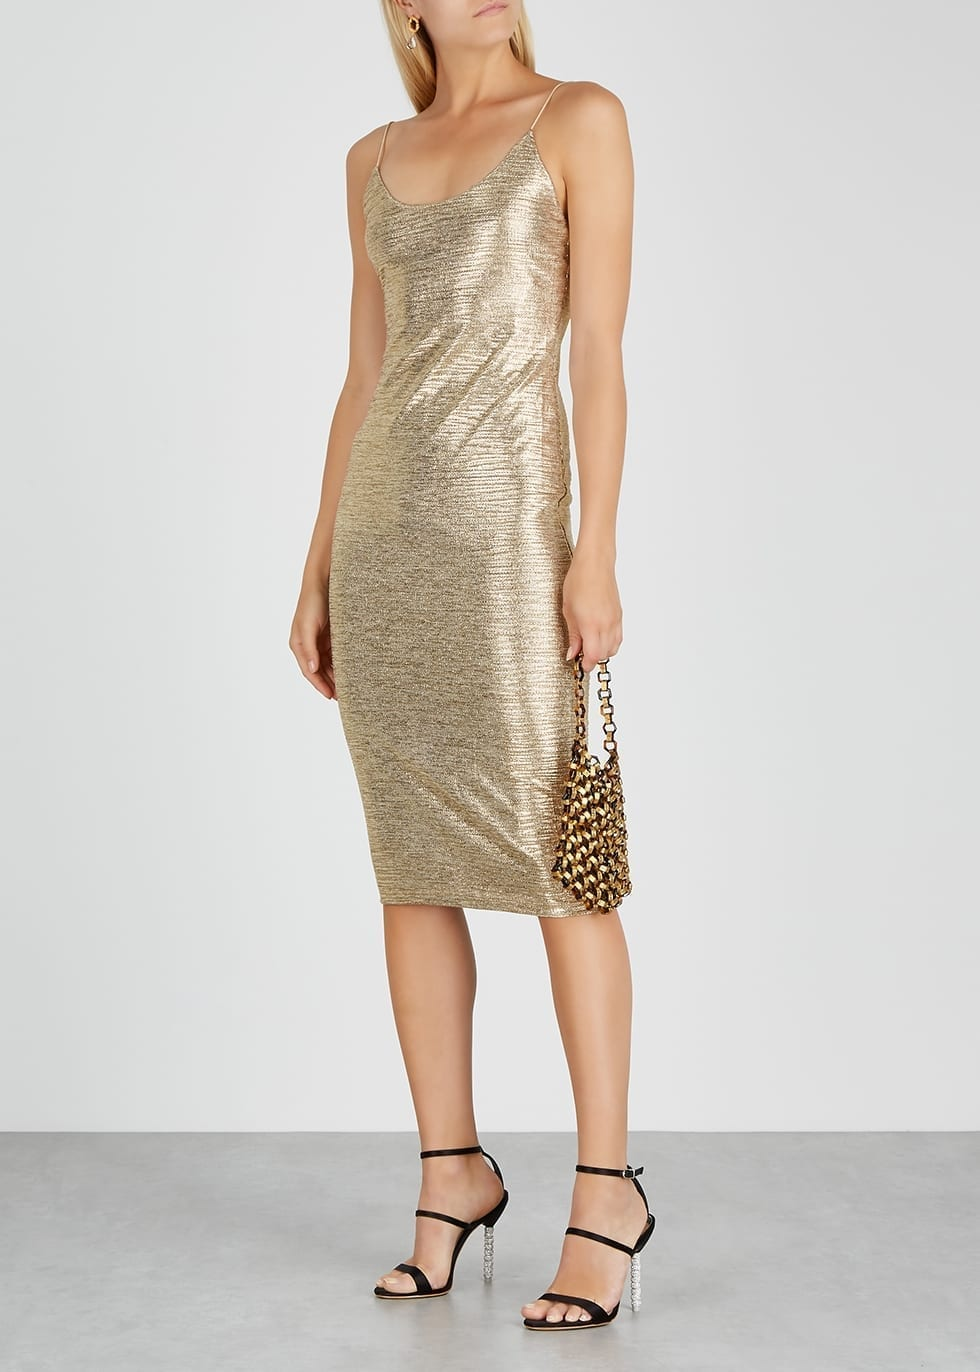 ALICE + OLIVIA Delora Gold Knitted Dress